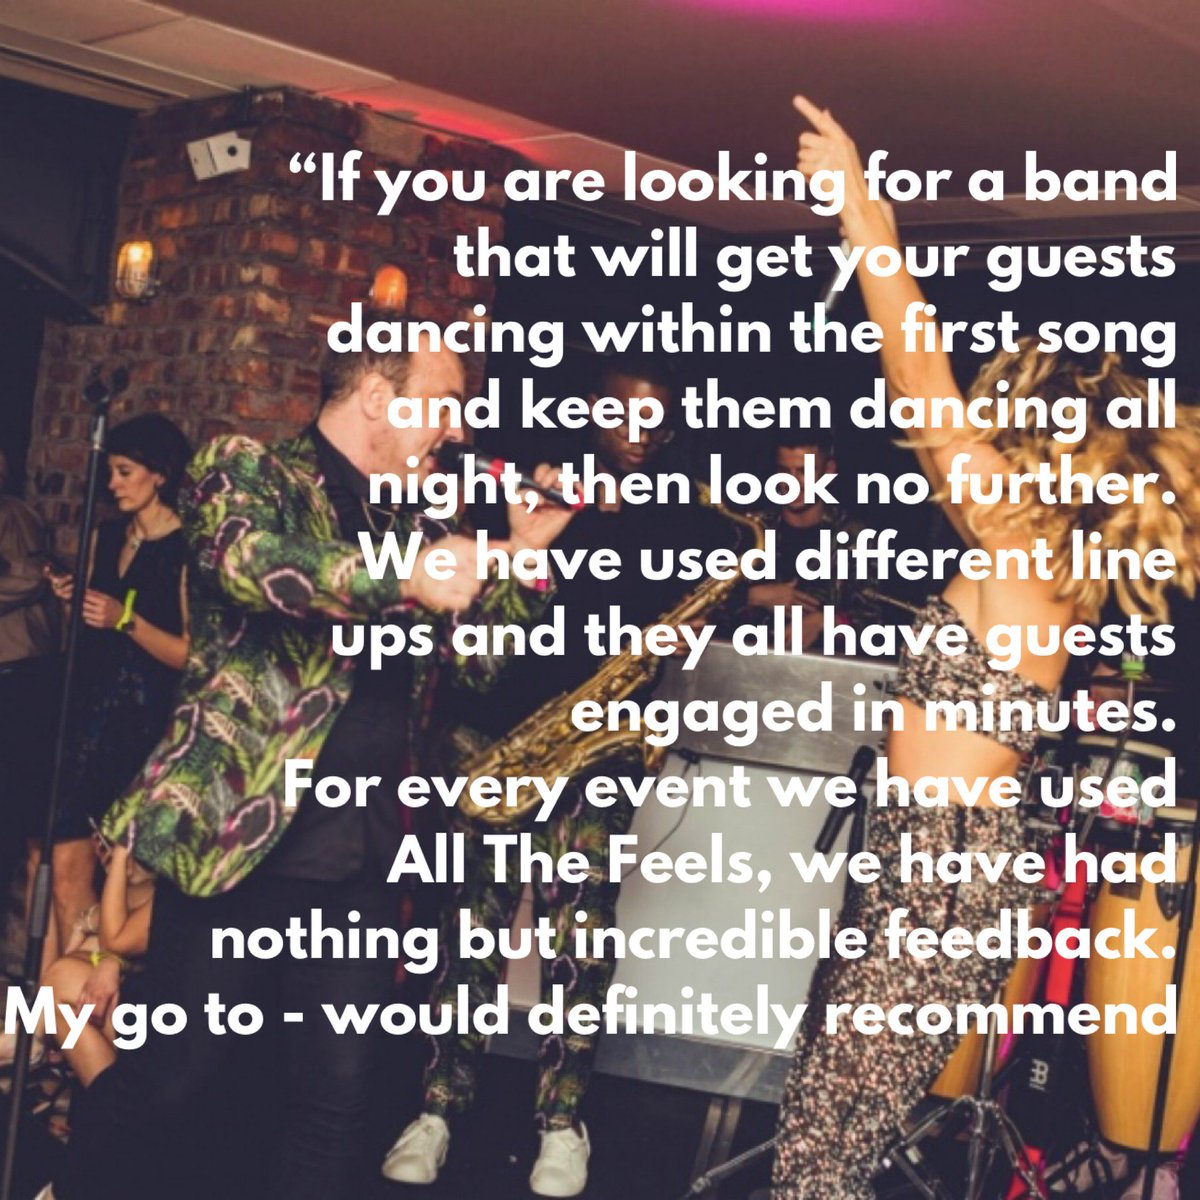 A Lovely review for All The Feels, from the events team at Maxwell's   #music #functionband #partyband #entertainment #isaidyes #weddingentertainment #weddingidears #WeddingPlanning #weddingchecklist #ido #coporateevents #eventprofs #eventprofessionals #reviews #reccomended